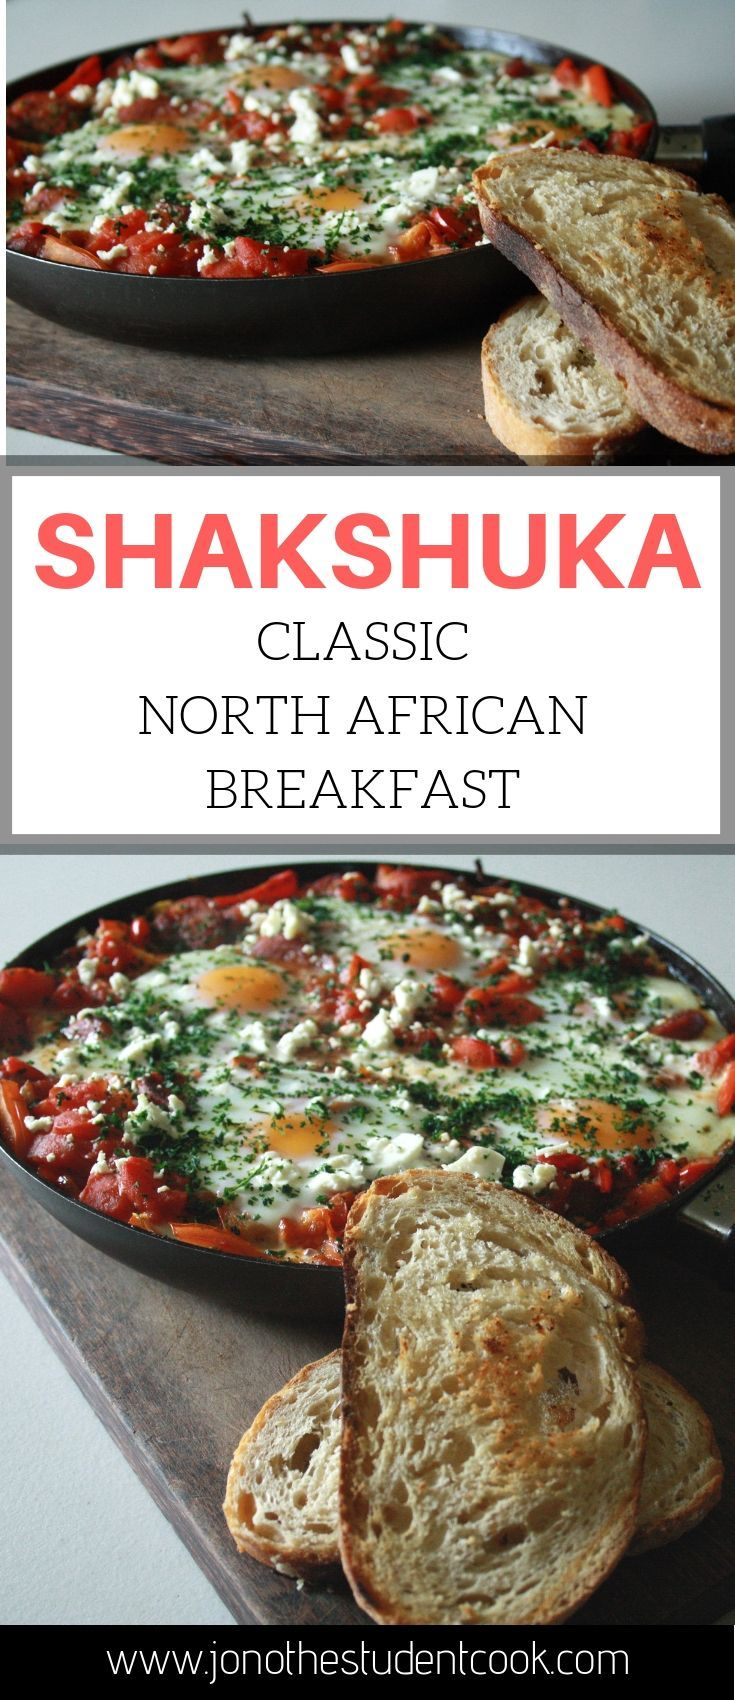 Easy Shakshuka recipe. A healthy breakfast from Morocco. #shakshuka #eggs #breakfastideas #breakfastrecipes #onedish #chorizo